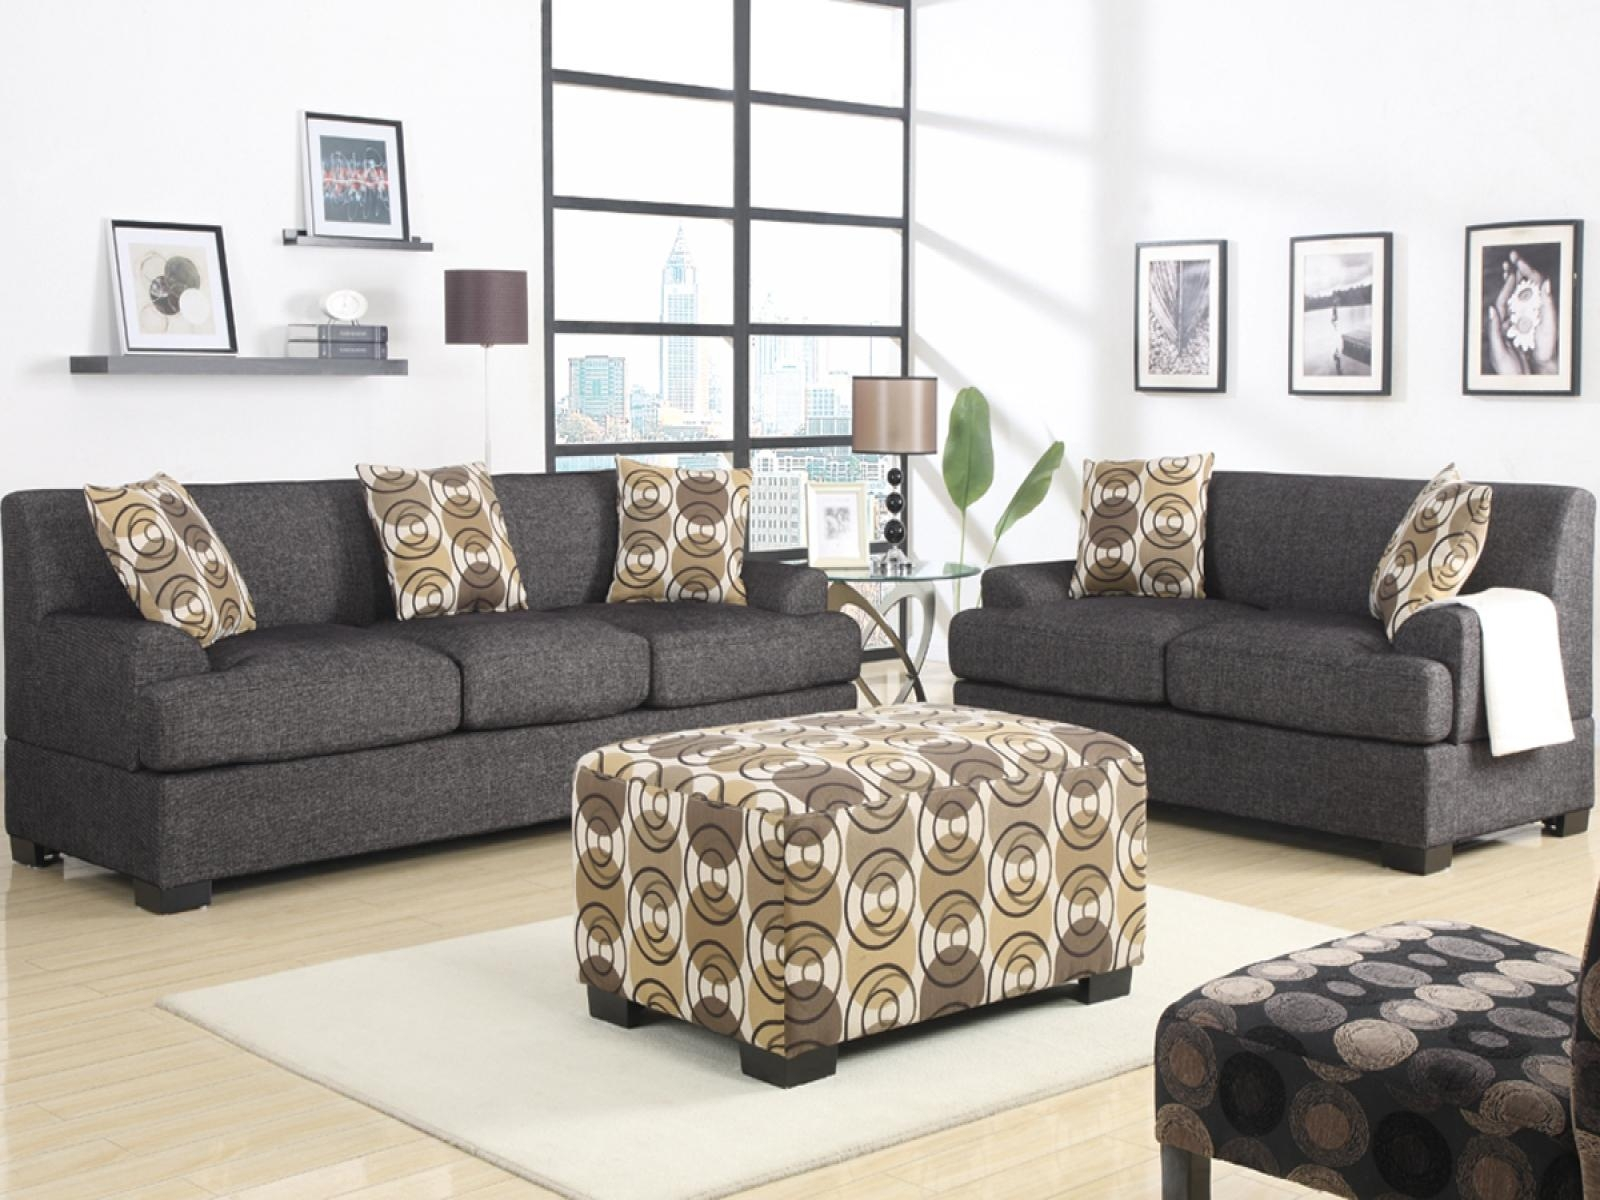 Furniture: Big Lots Sectional | Big Lots Loveseat | Simmons Sofa For Big Lots Simmons Furniture (Image 4 of 20)